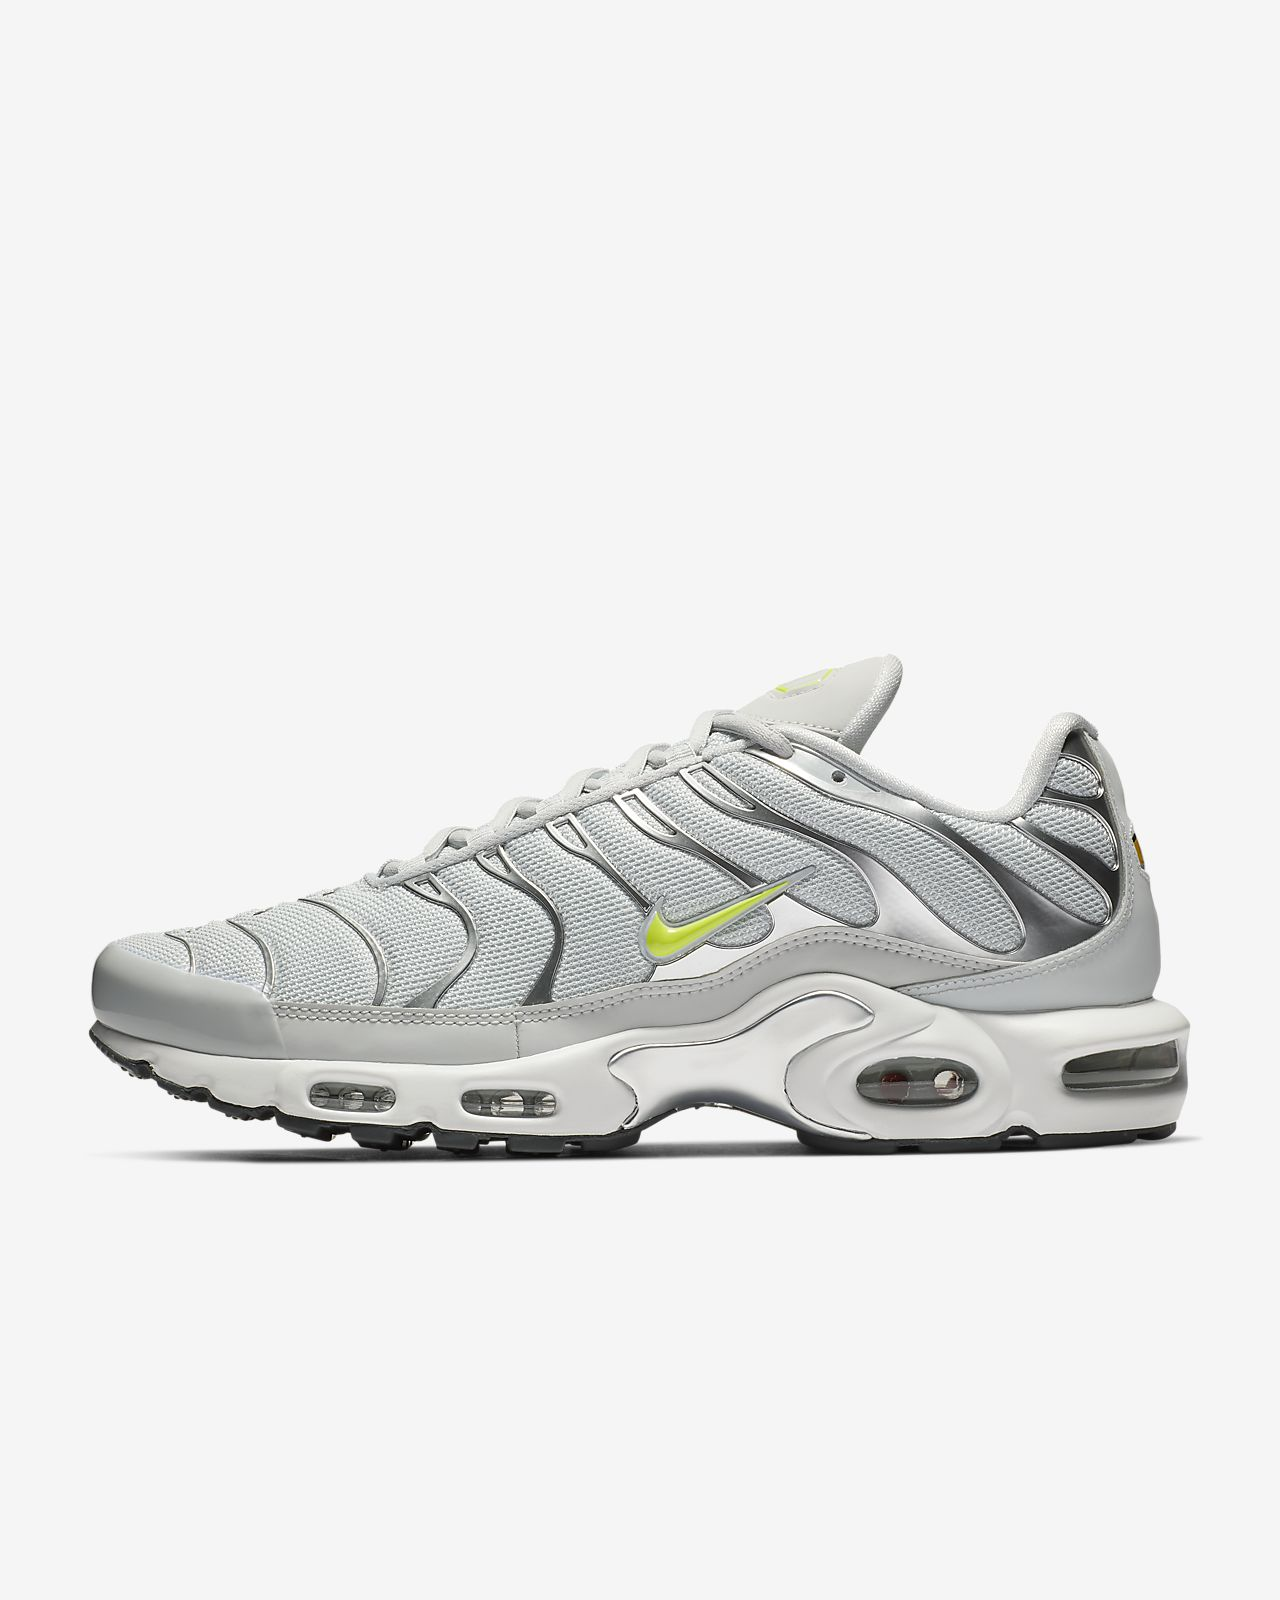 92c39e1ac8 Nike Air Max Plus TN SE Men's Shoe. Nike.com LU